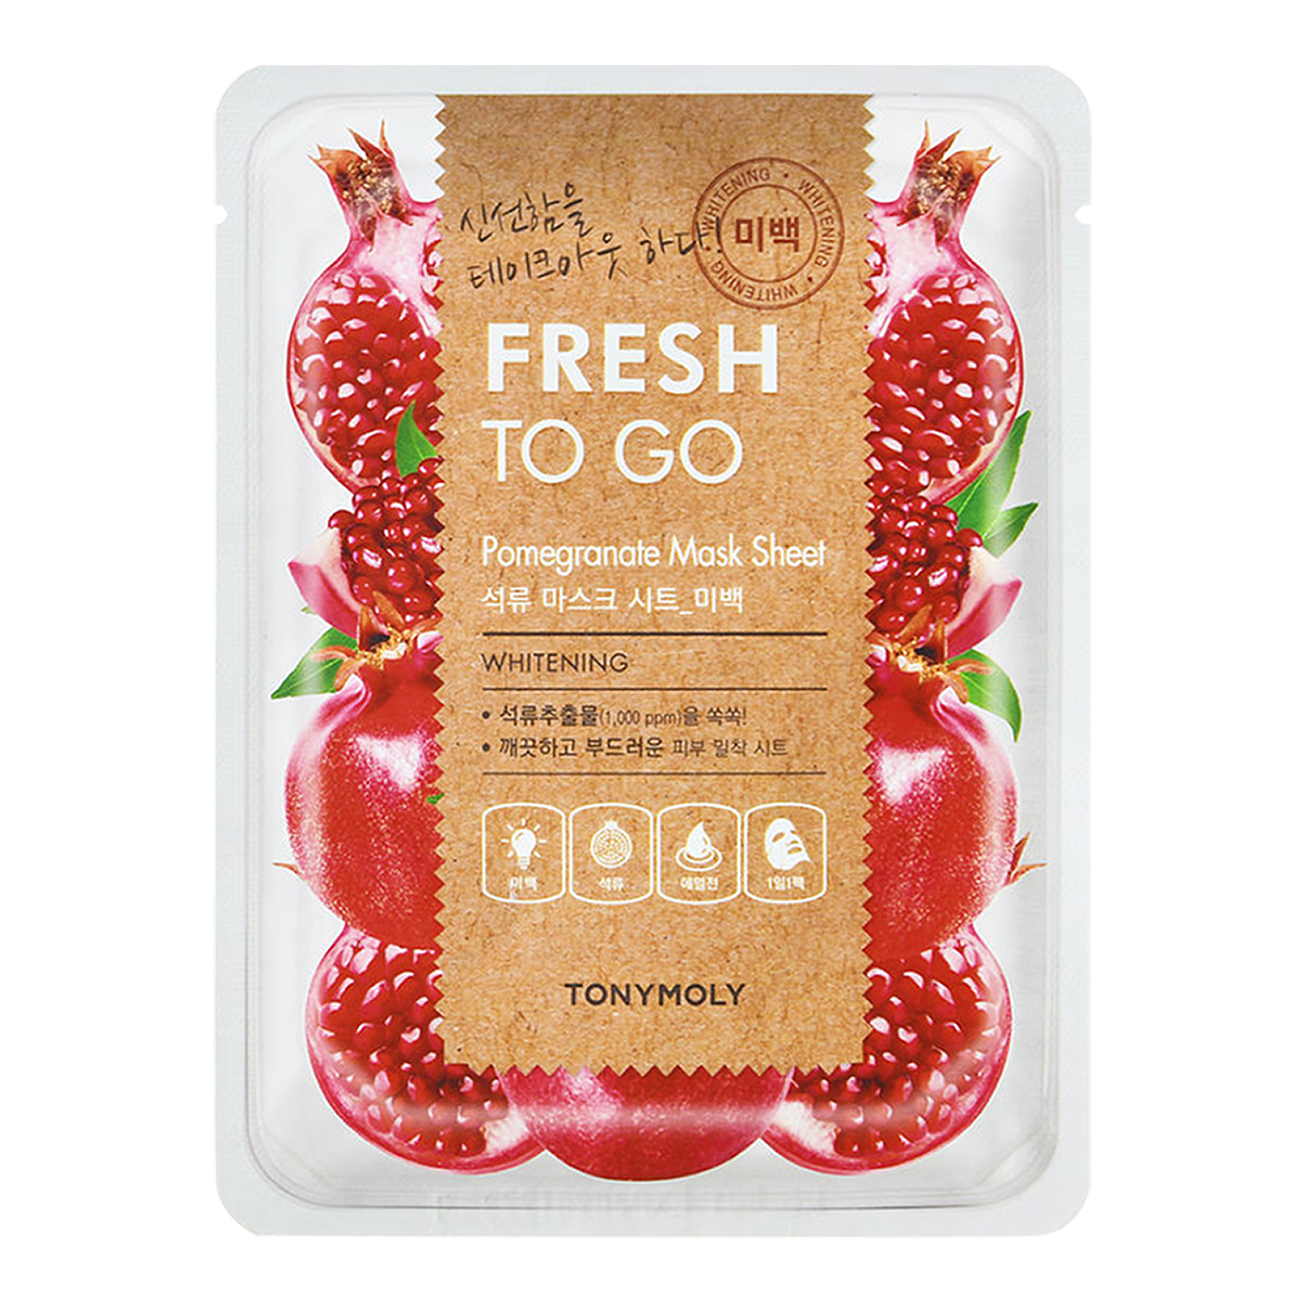 mat-na-giay-tony-moly-fresh-to-go-mask-sheet-pomegrande-review-thanh-phan-gia-cong-dung-64